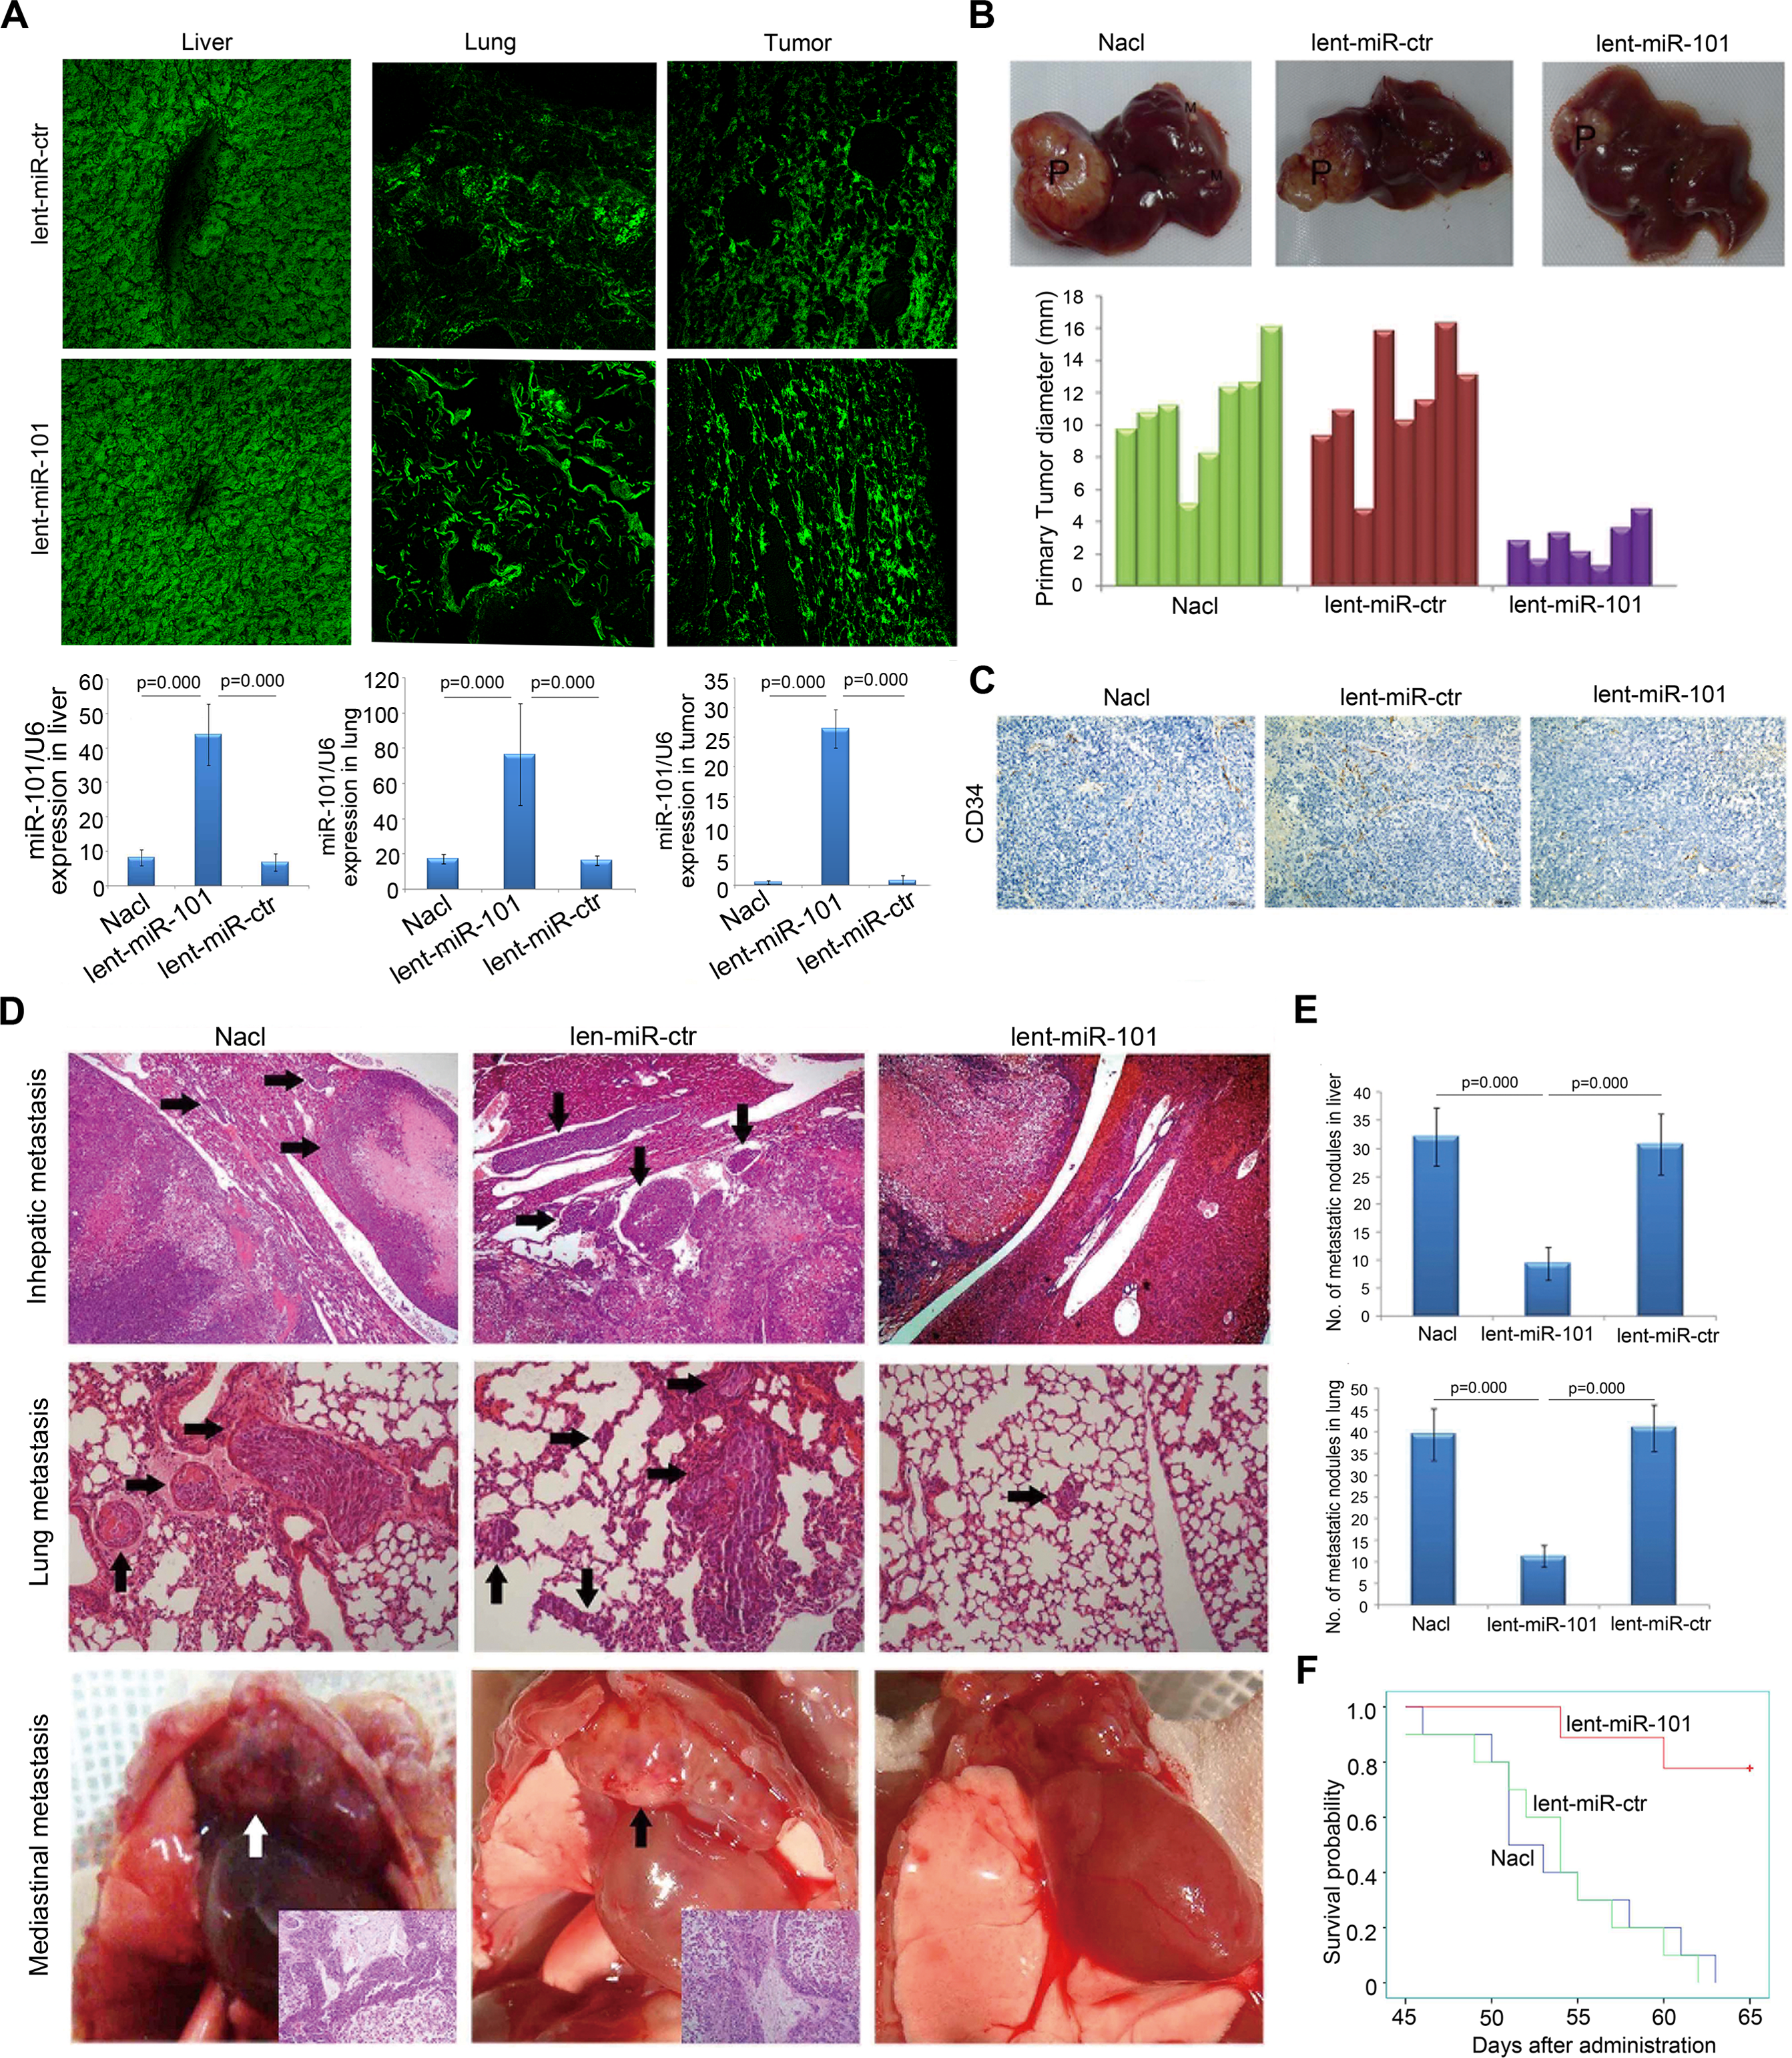 Systemic delivery of lent-miR-101 suppresses tumor growth, angiogenesis and metastasis in the orthotopic liver implanted HCC model of mouse.